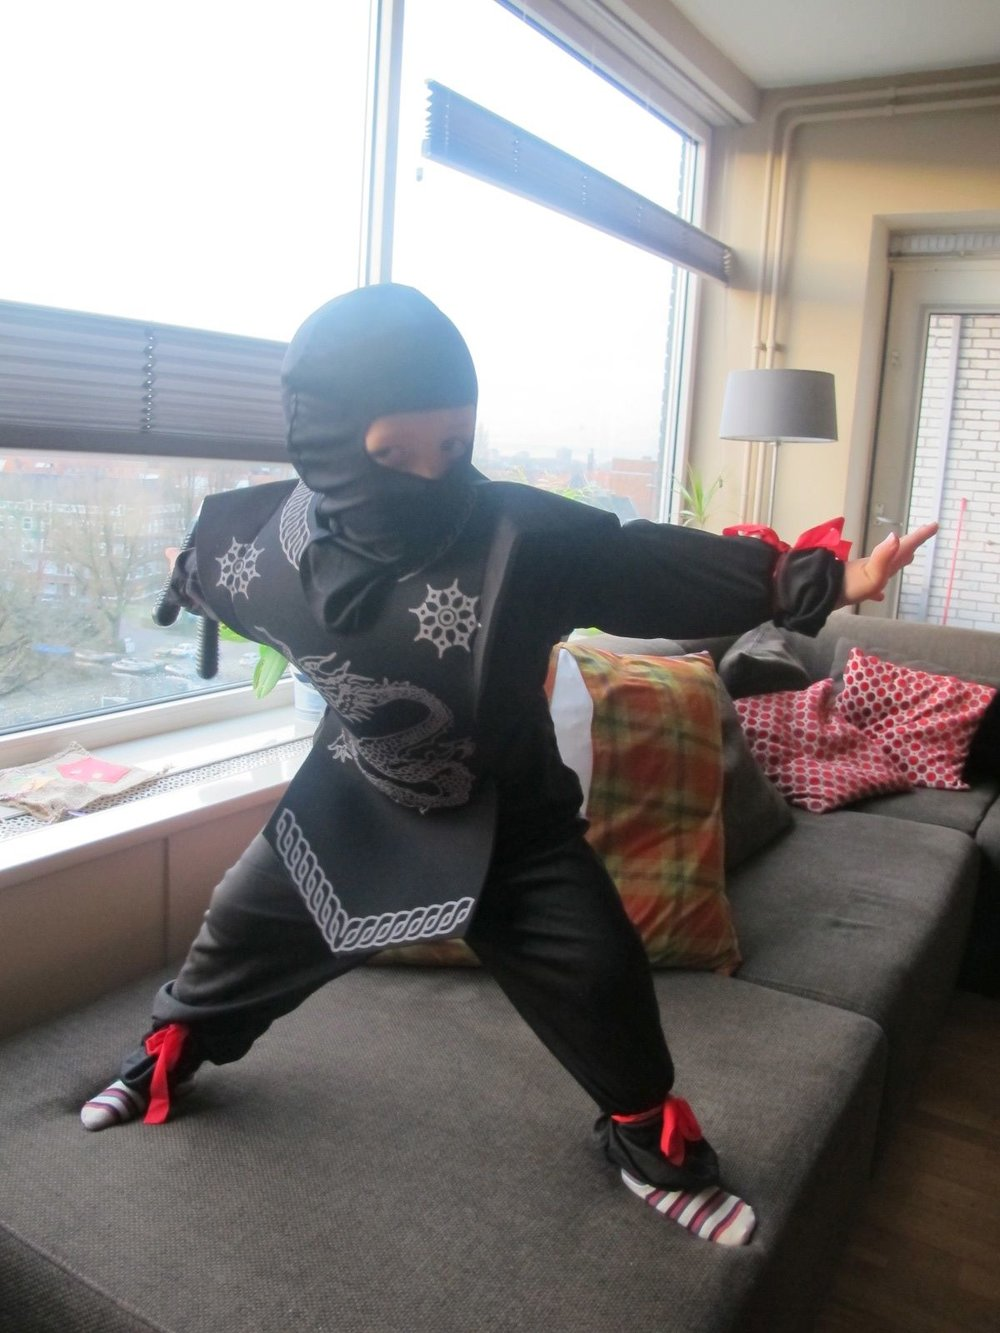 My son the Ninja warrior, photo ©JLV